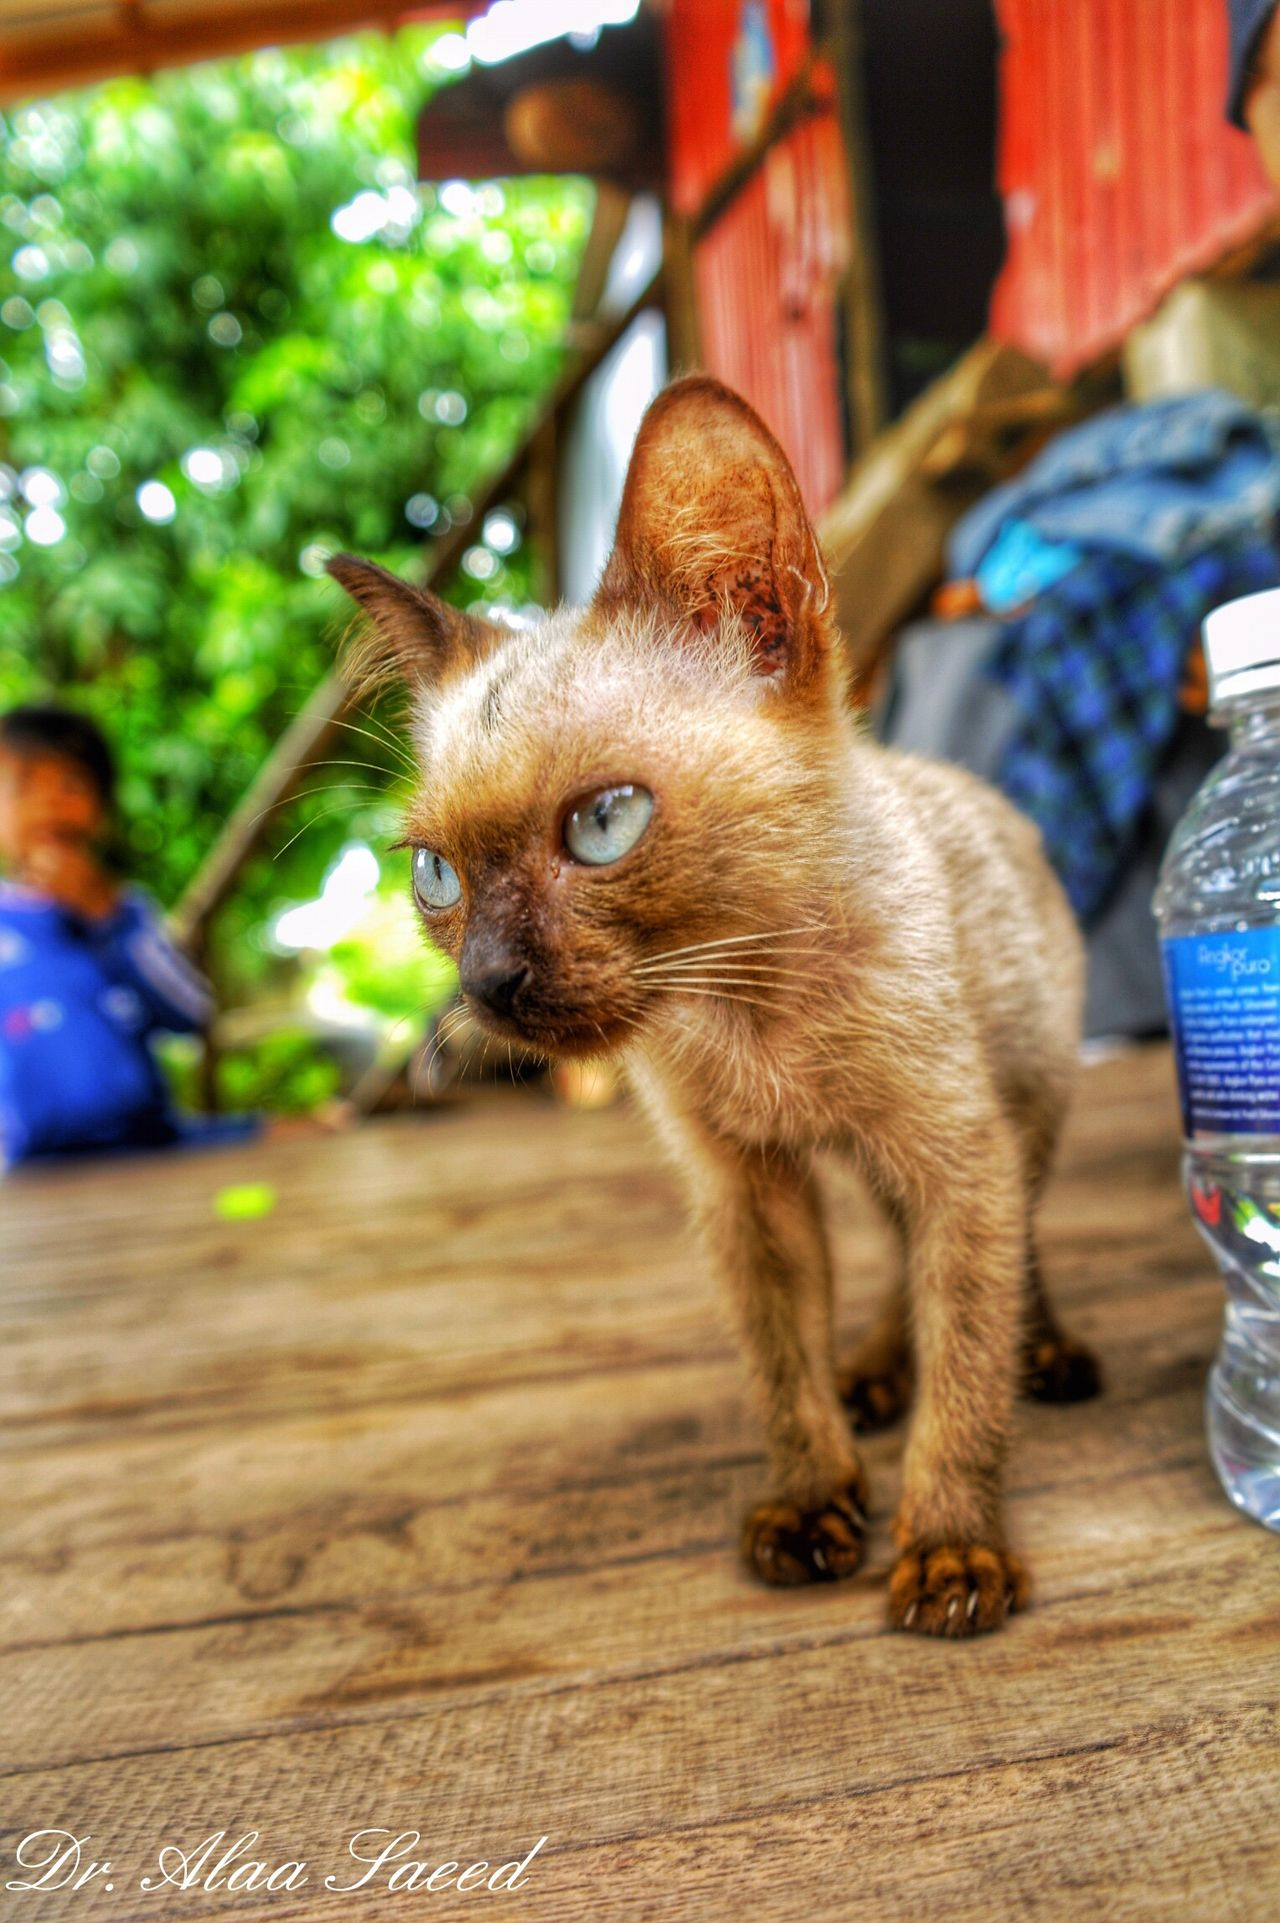 One Animal Mammal Pets Domestic Animals Domestic Cat Selective Focus Focus On Foreground Whisker Feline Day Cat Cambodia Photos Cambodia Looking Zoology Close-up Siamese Cat Siamesecats